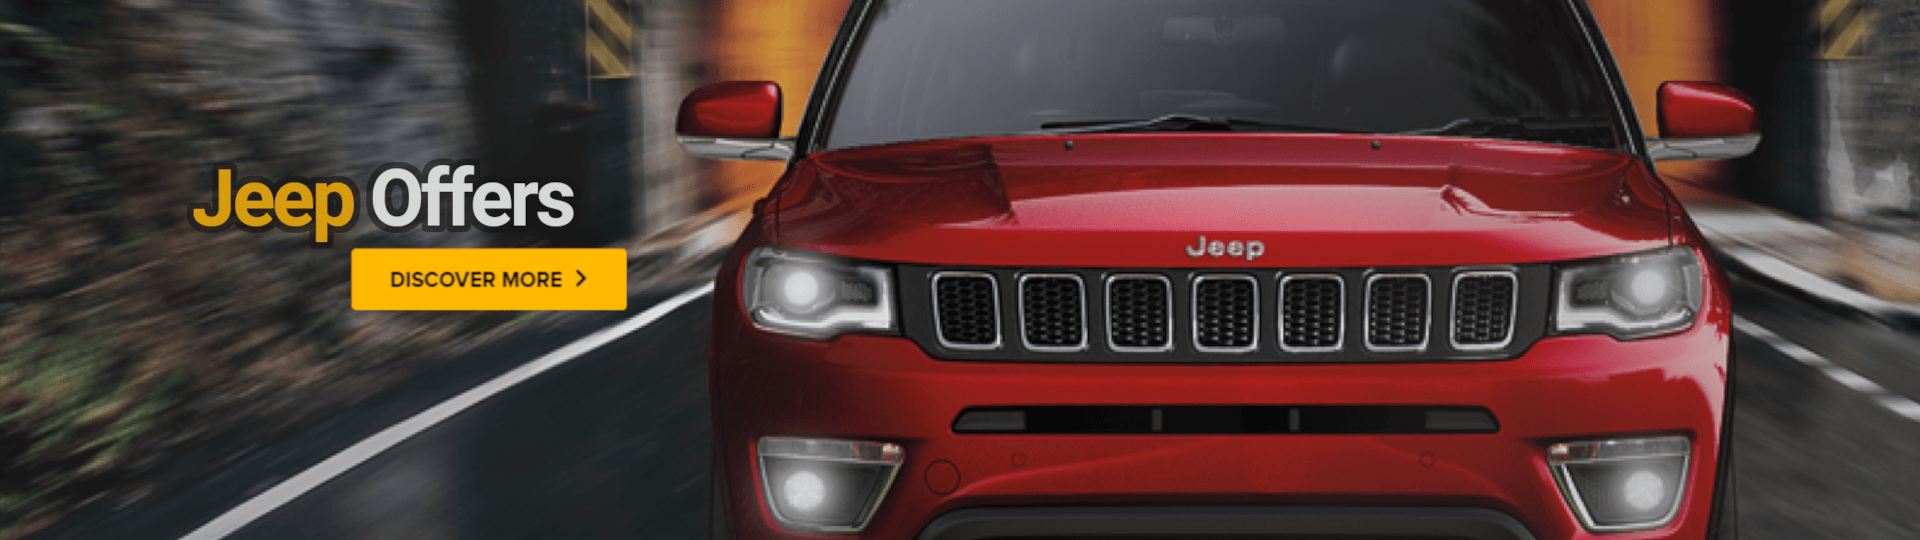 Jeep Offers Discover More